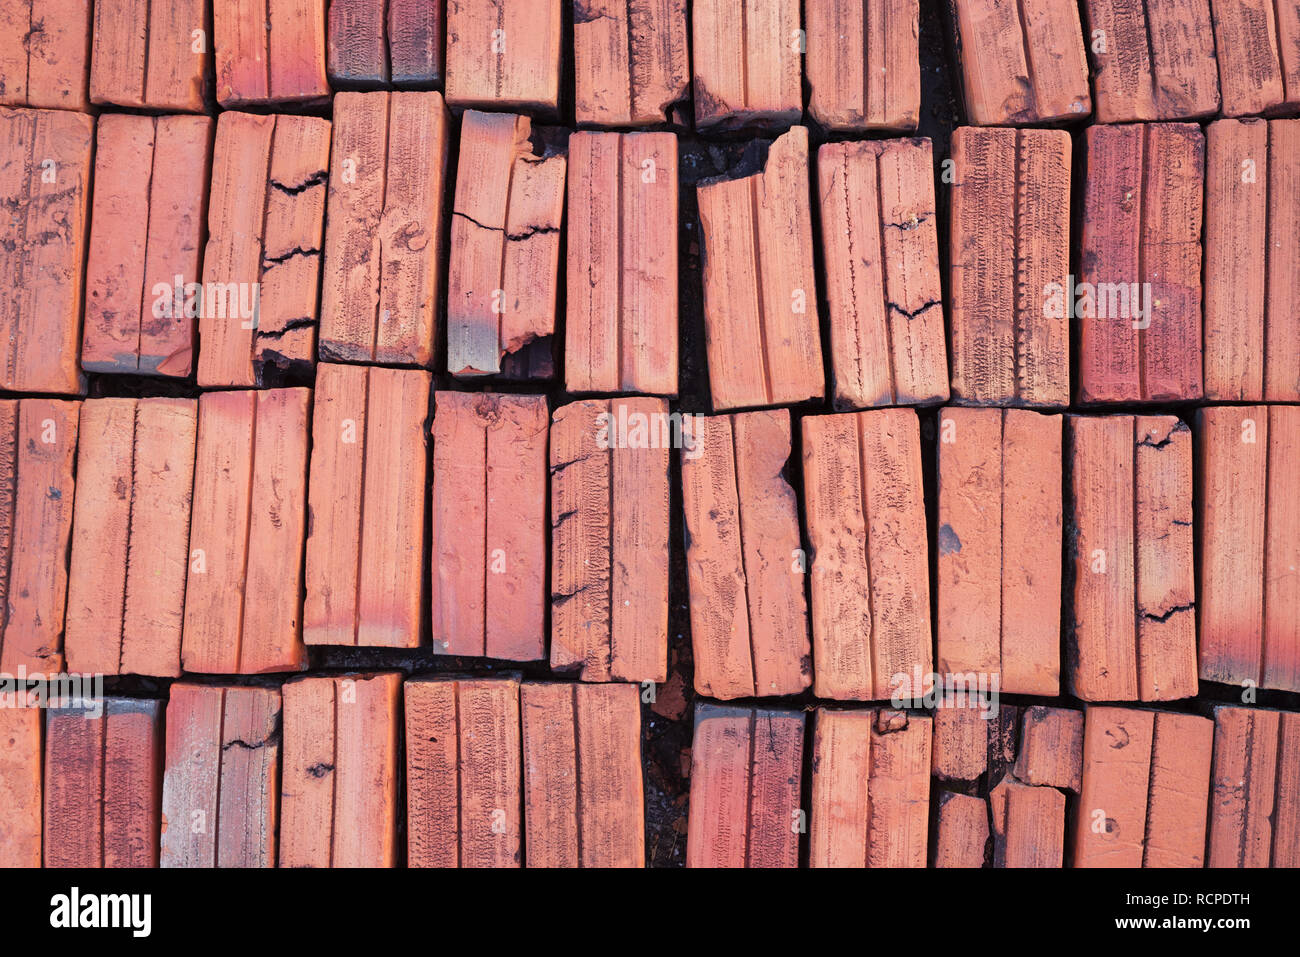 old red bricks laid out in a background array - Stock Image